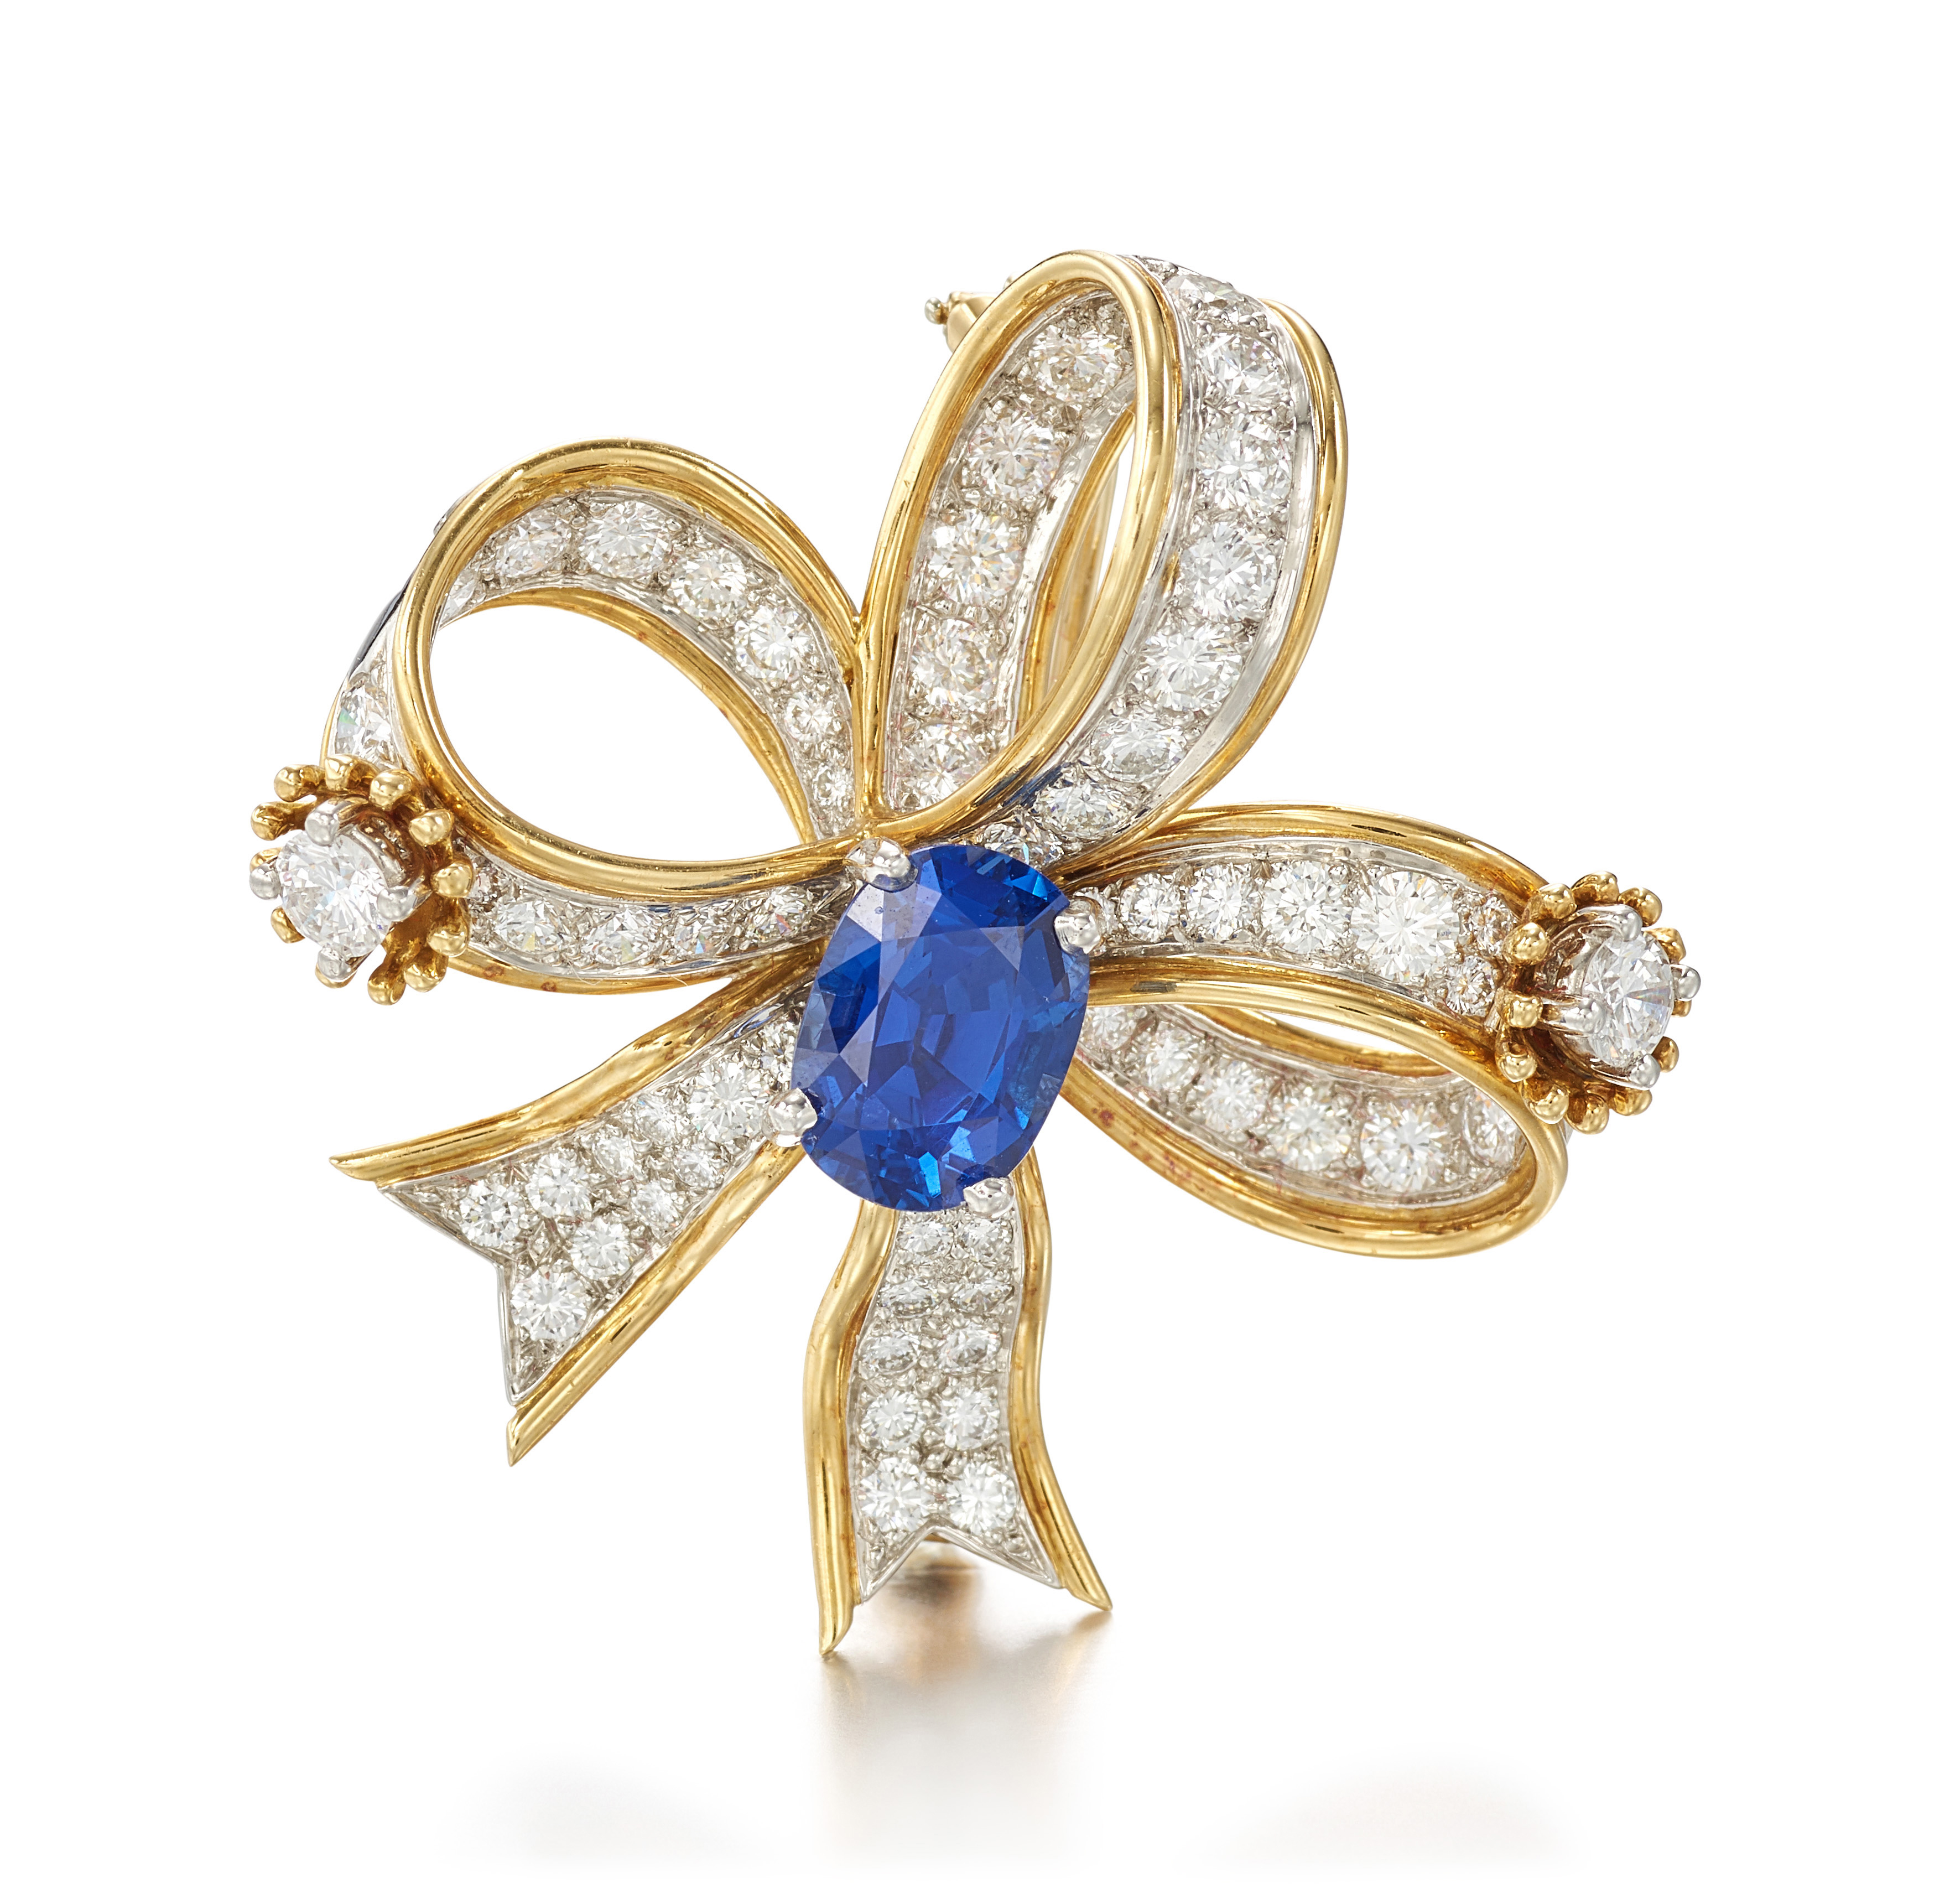 View full screen - View 1 of Lot 9125. SAPPHIRE AND DIAMOND BROOCH, SCHLUMBERGER FOR TIFFANY & CO. | 藍寶石 配 鑽石 別針, Schlumberger for Tiffany & Co..